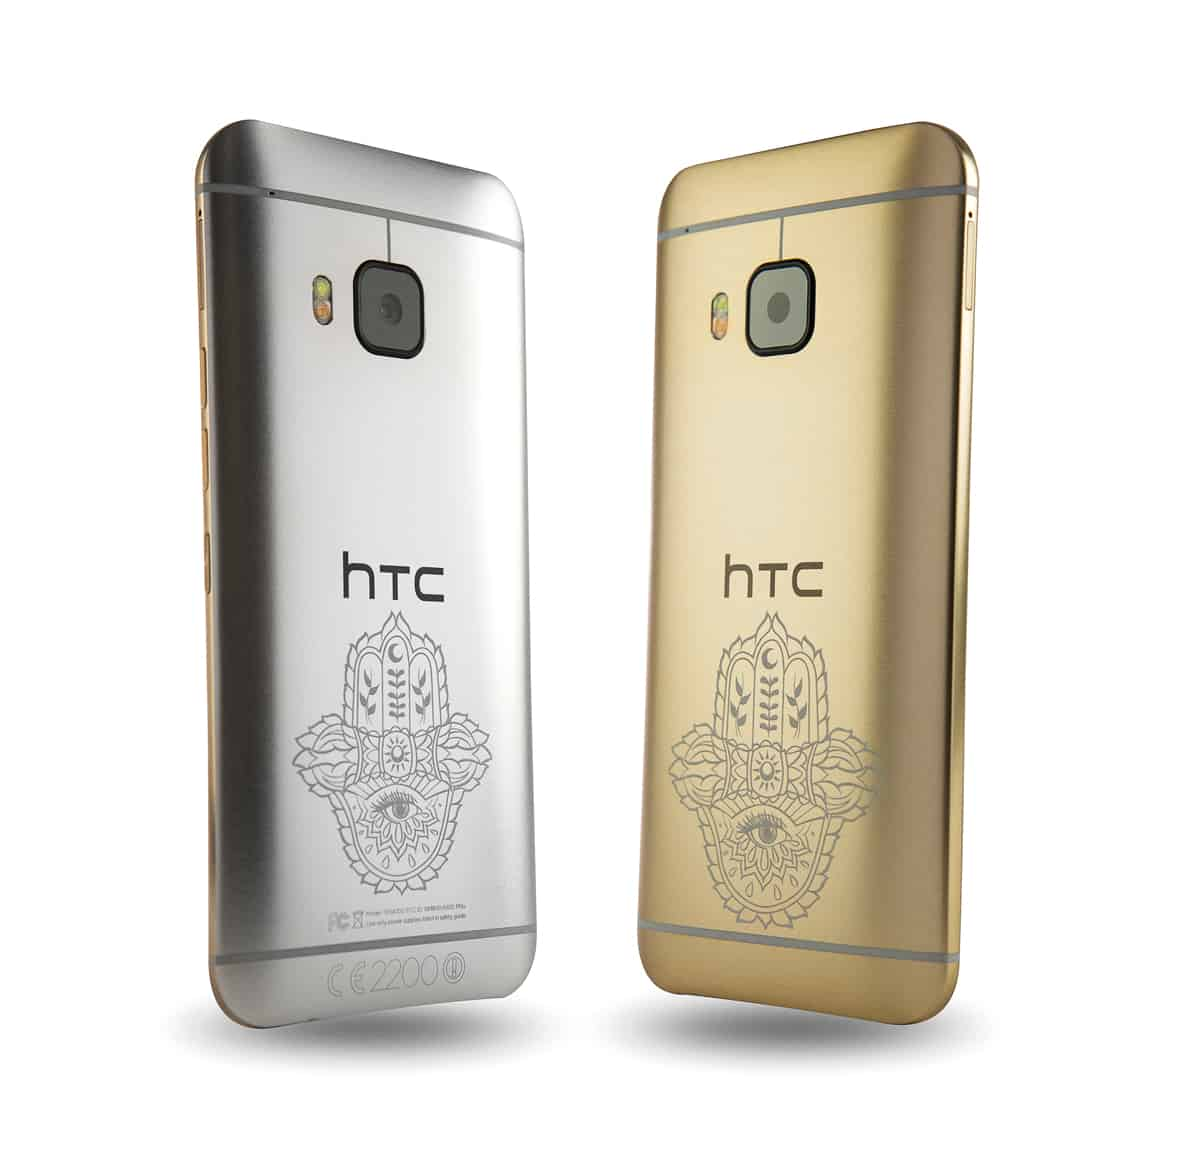 HTC-ONE-M9-INK-GOLD-HANDSET-AND-SILVER-HANDSET-LOW-RES